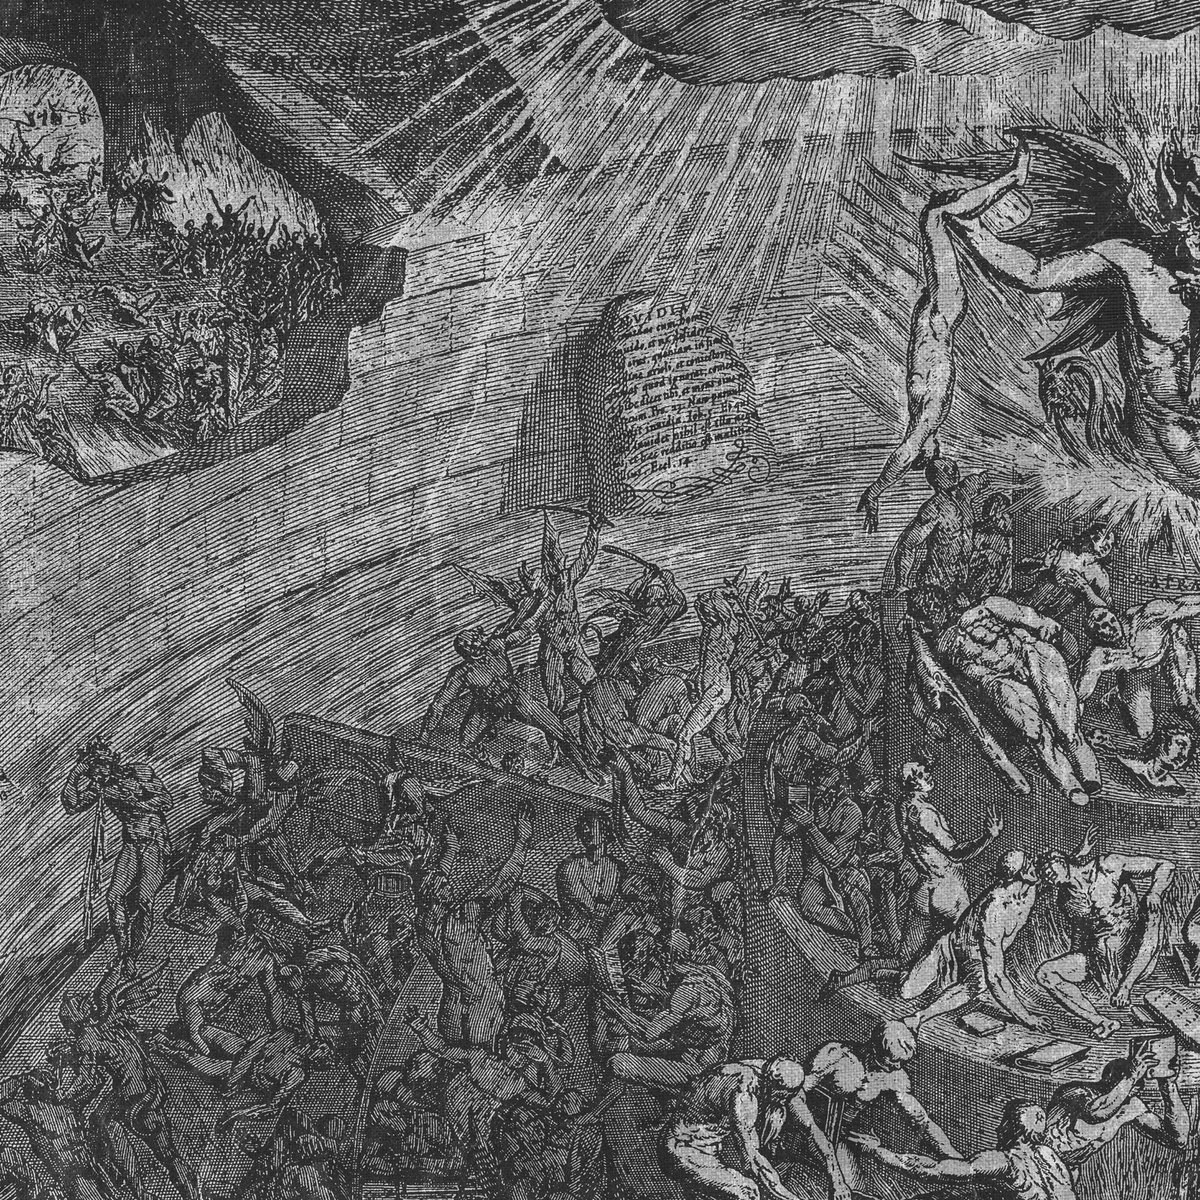 Reviews for Misotheist (NOR) - For the Glory of Your Redeemer